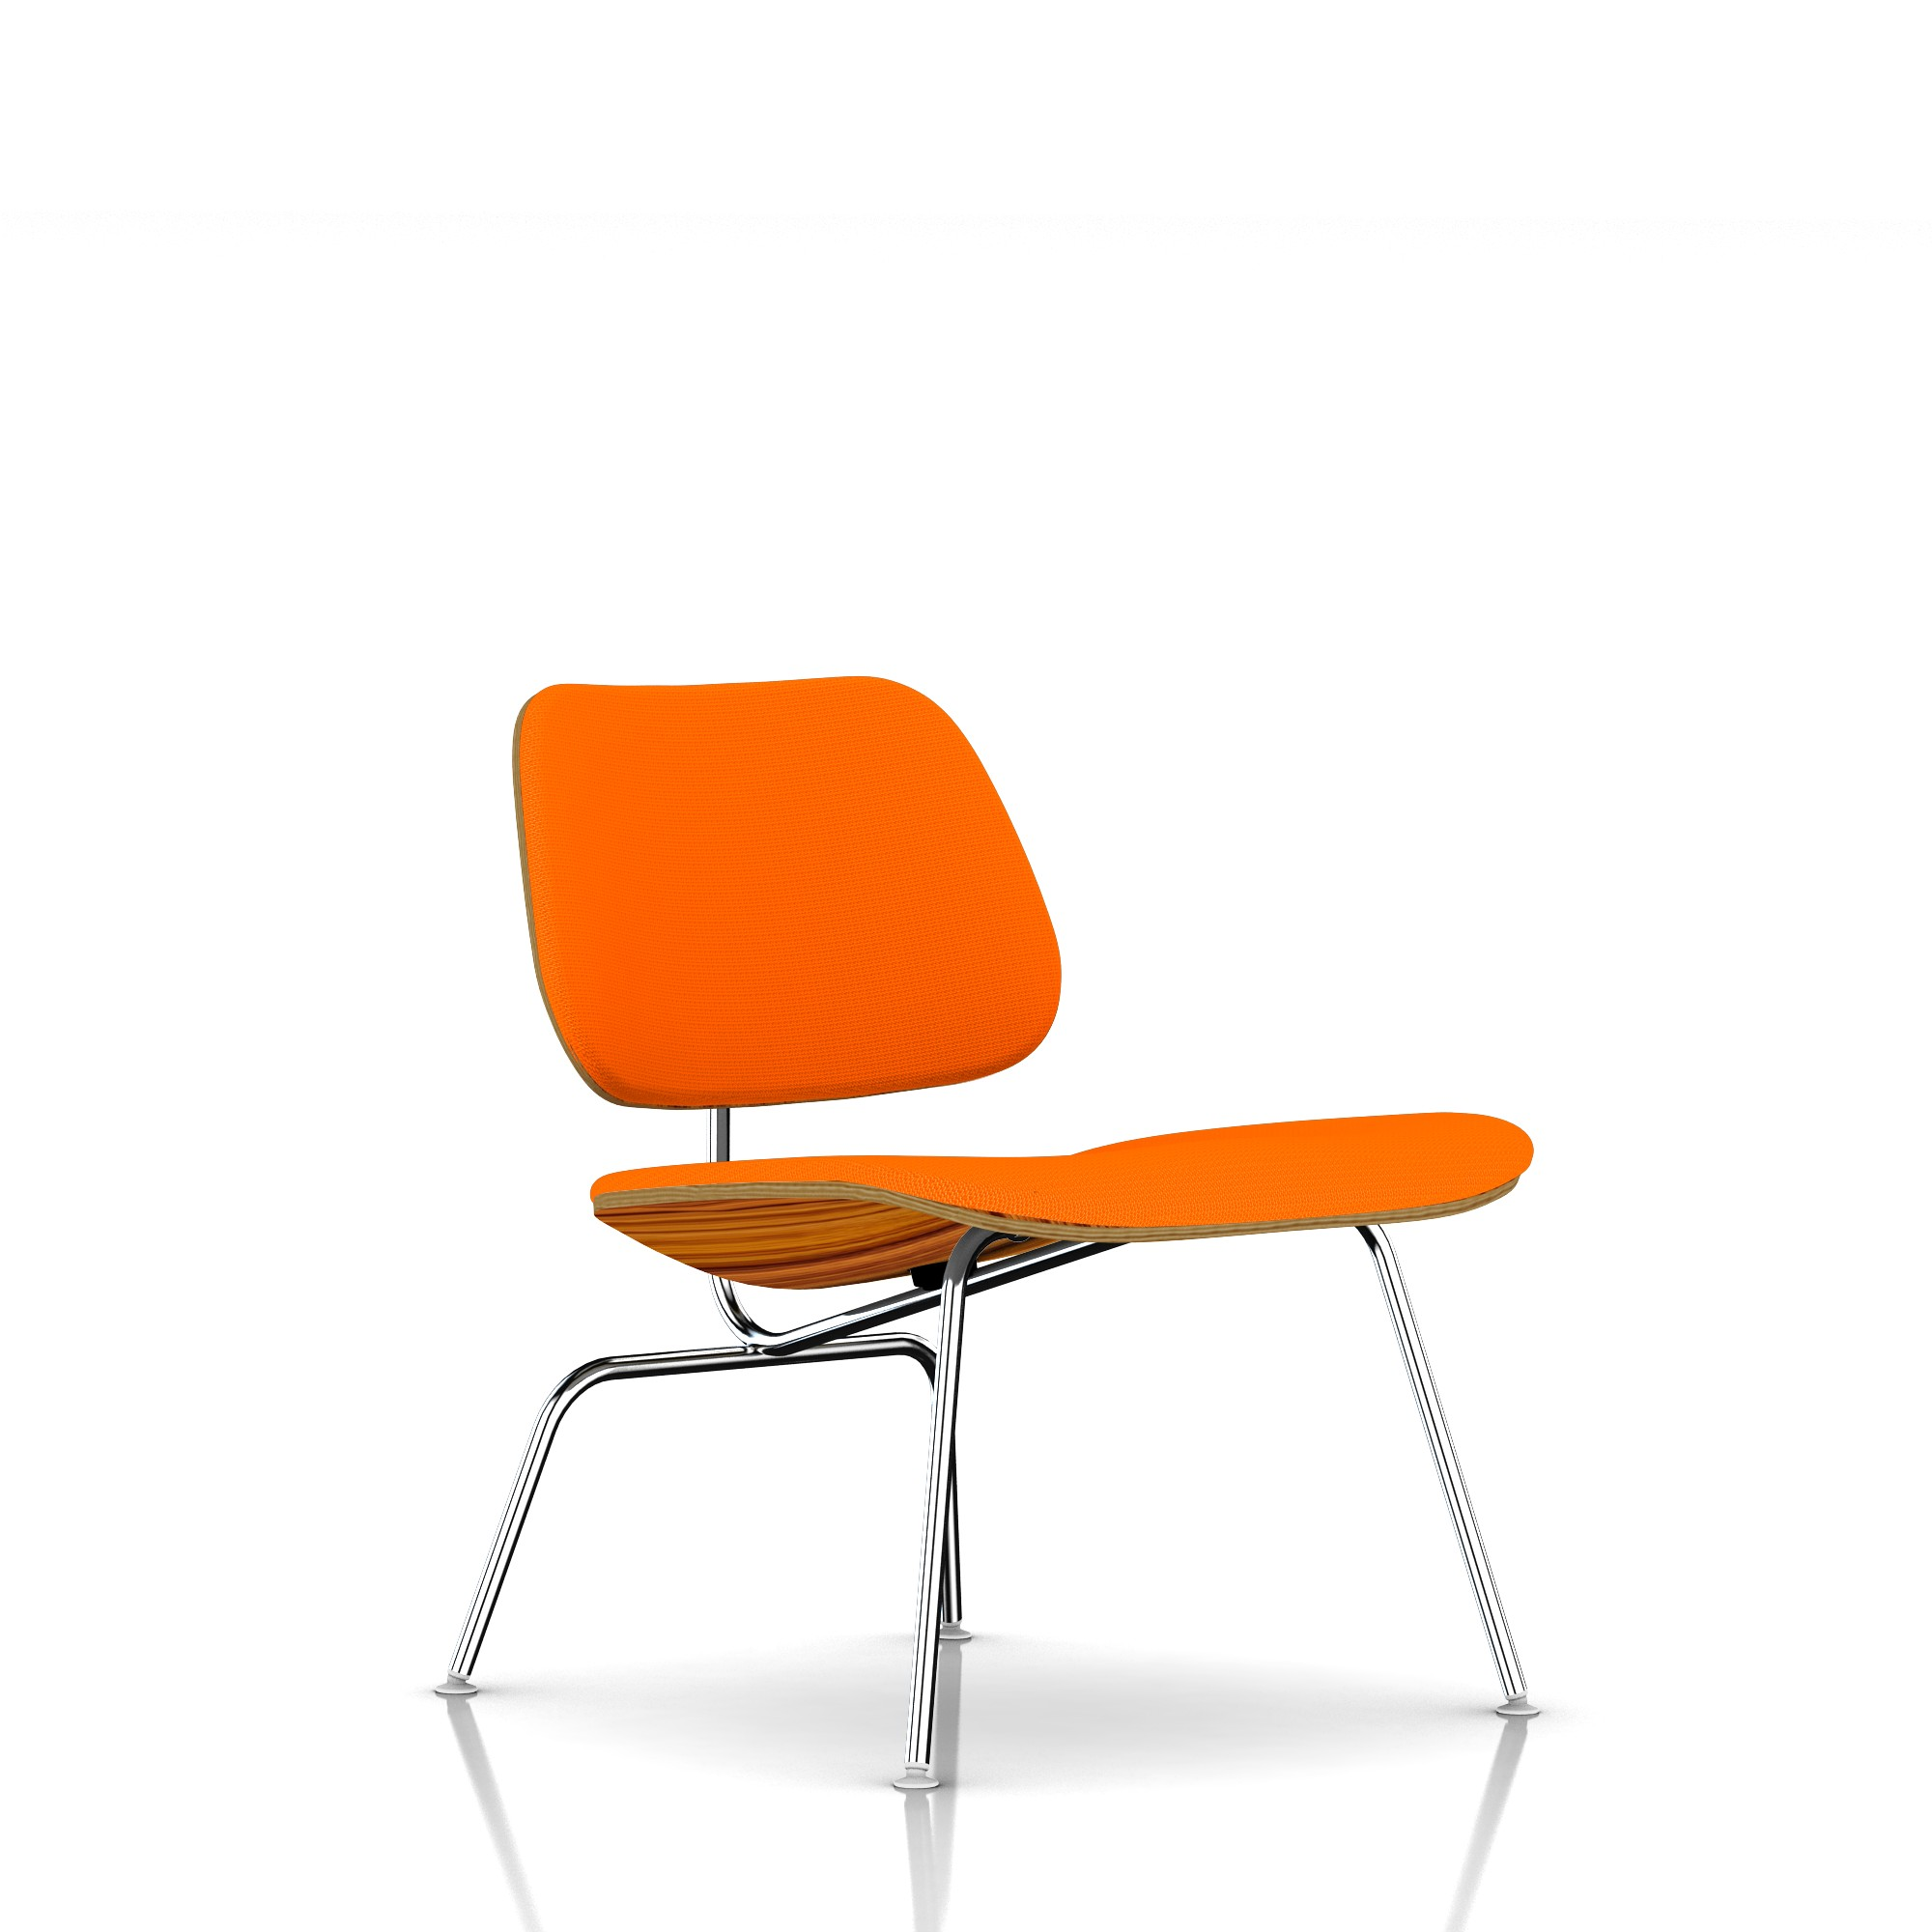 Eames Molded Plywood Lounge Chair in Tangerine by Herman Miller